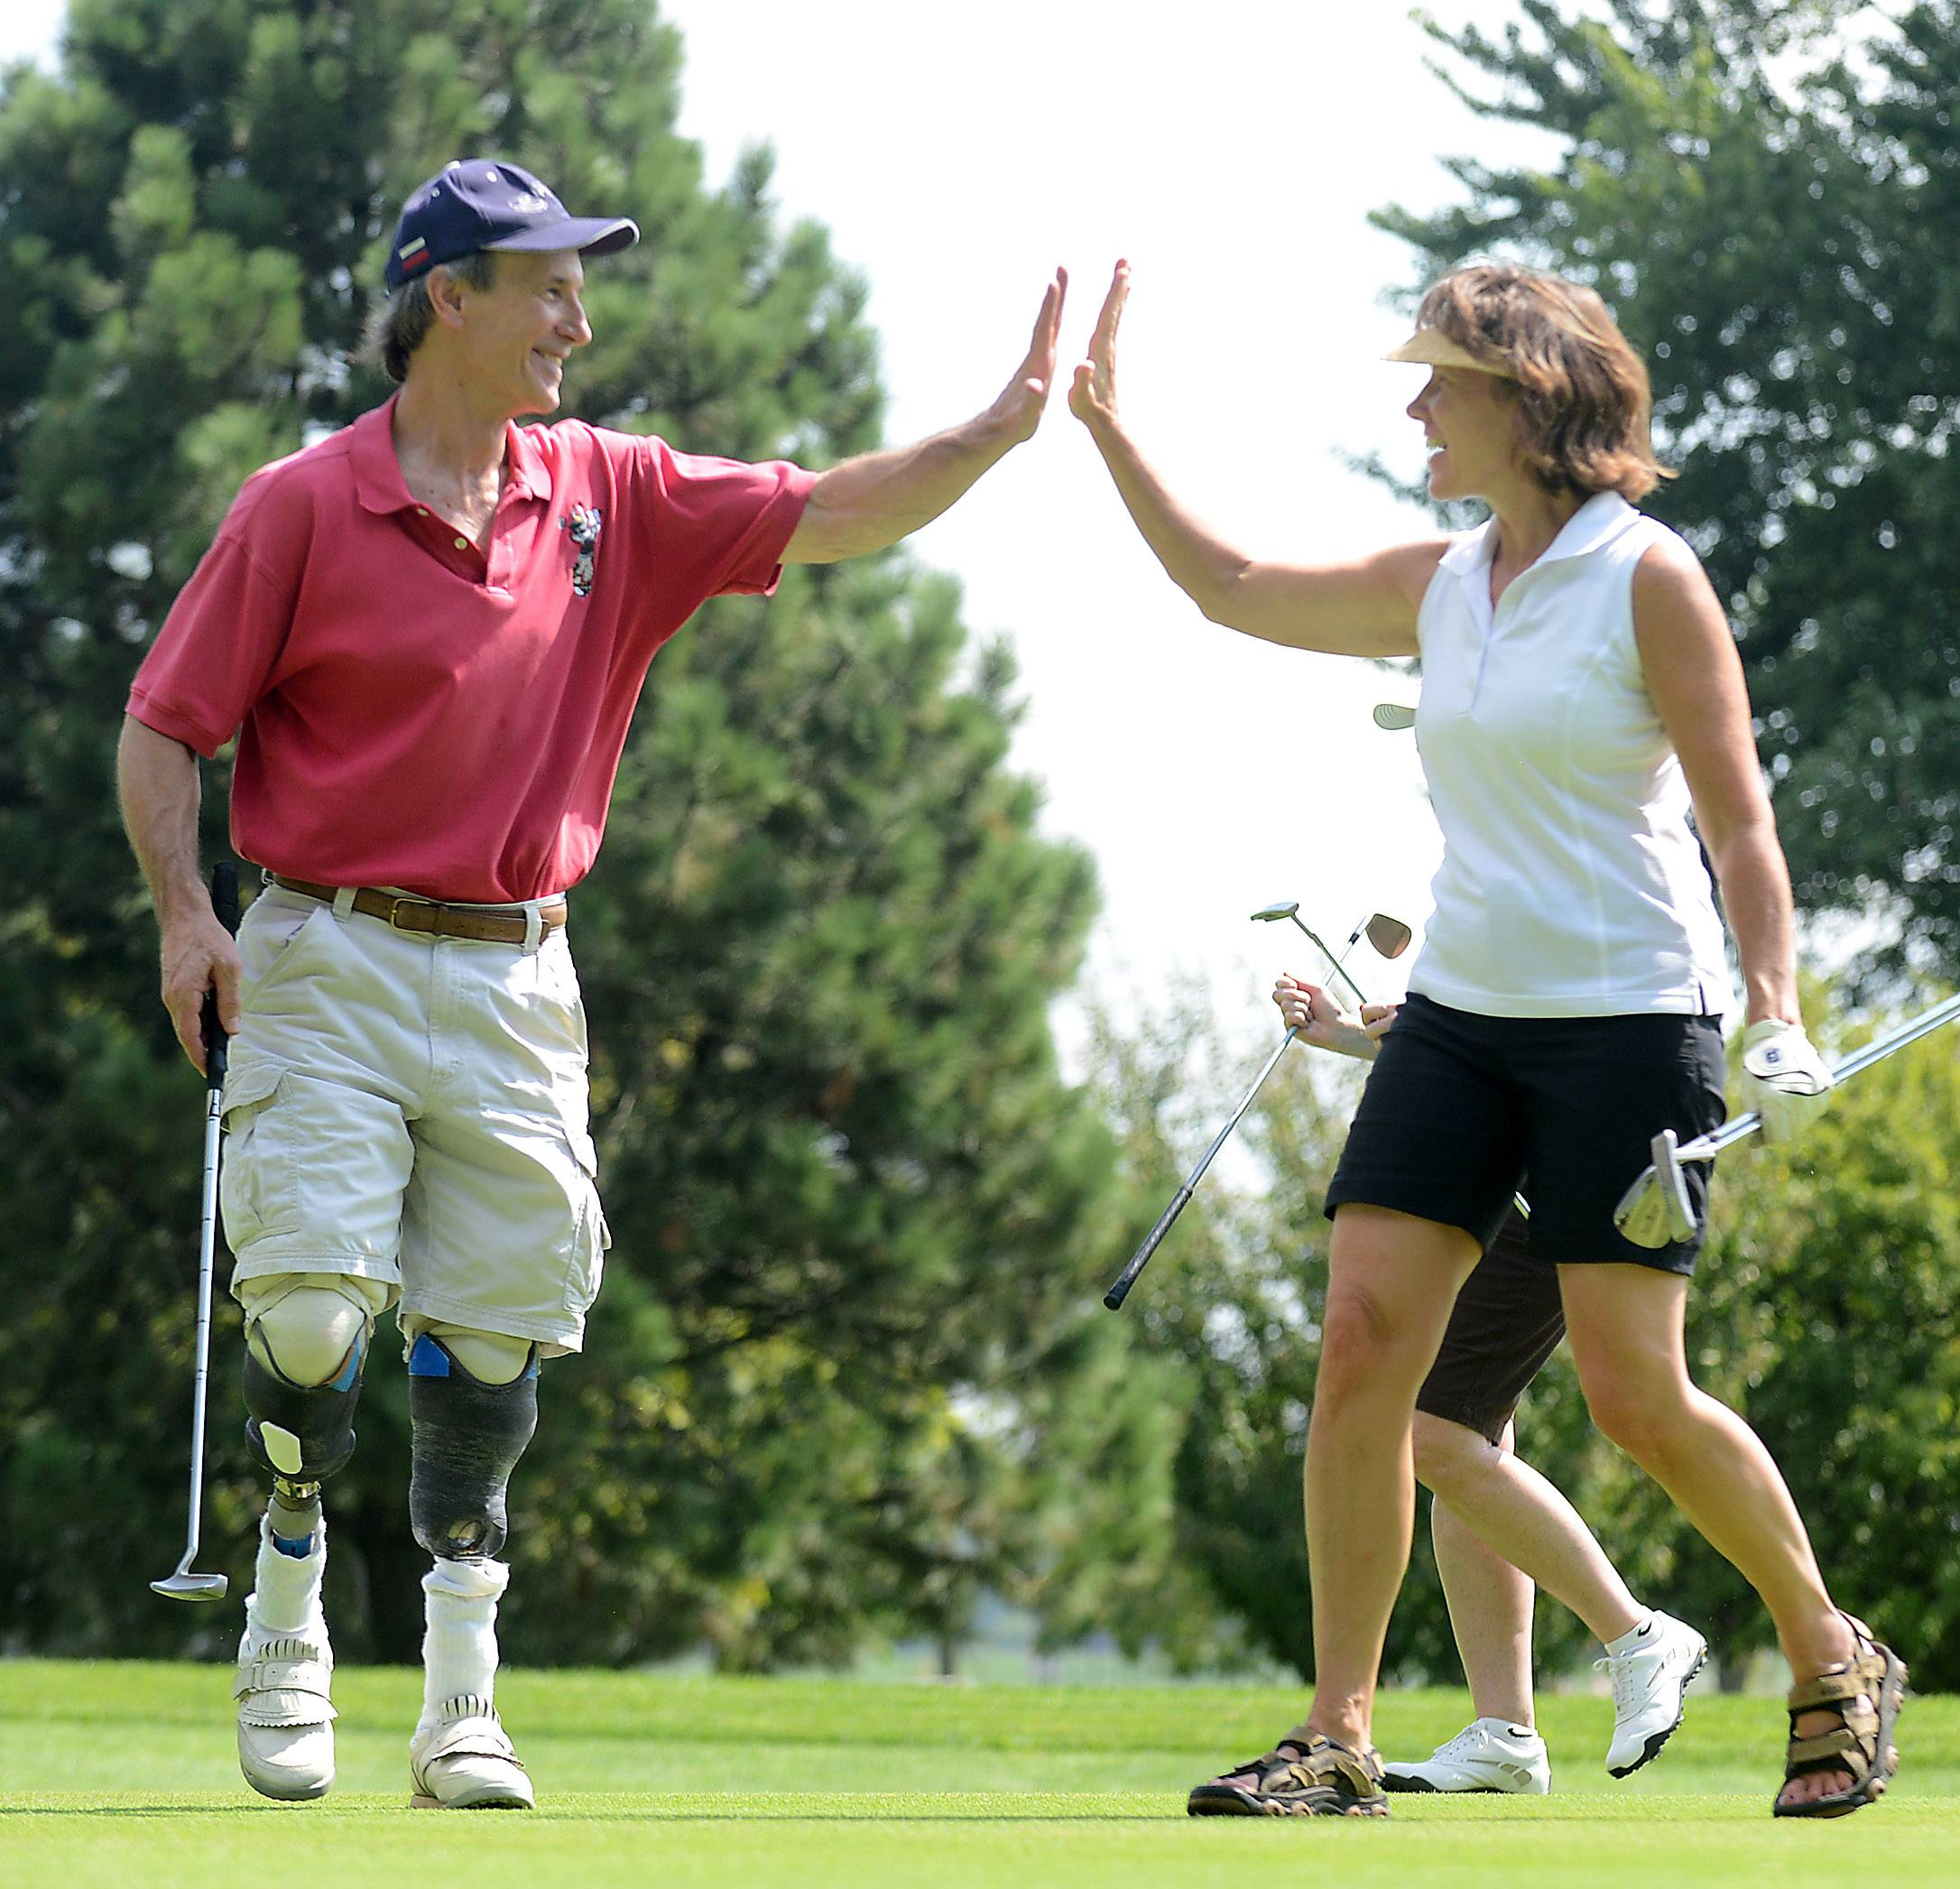 Jeff Linton of Chicago gets a high-five from Robin Carlson of Berwyn after he sank a putt during a scramble fundraising round Friday at the 14th annual Midwestern Amputee Golf Association tournament at Pheasant Run in St. Charles. Linton lost his legs in an accident in college and later picked up golf.